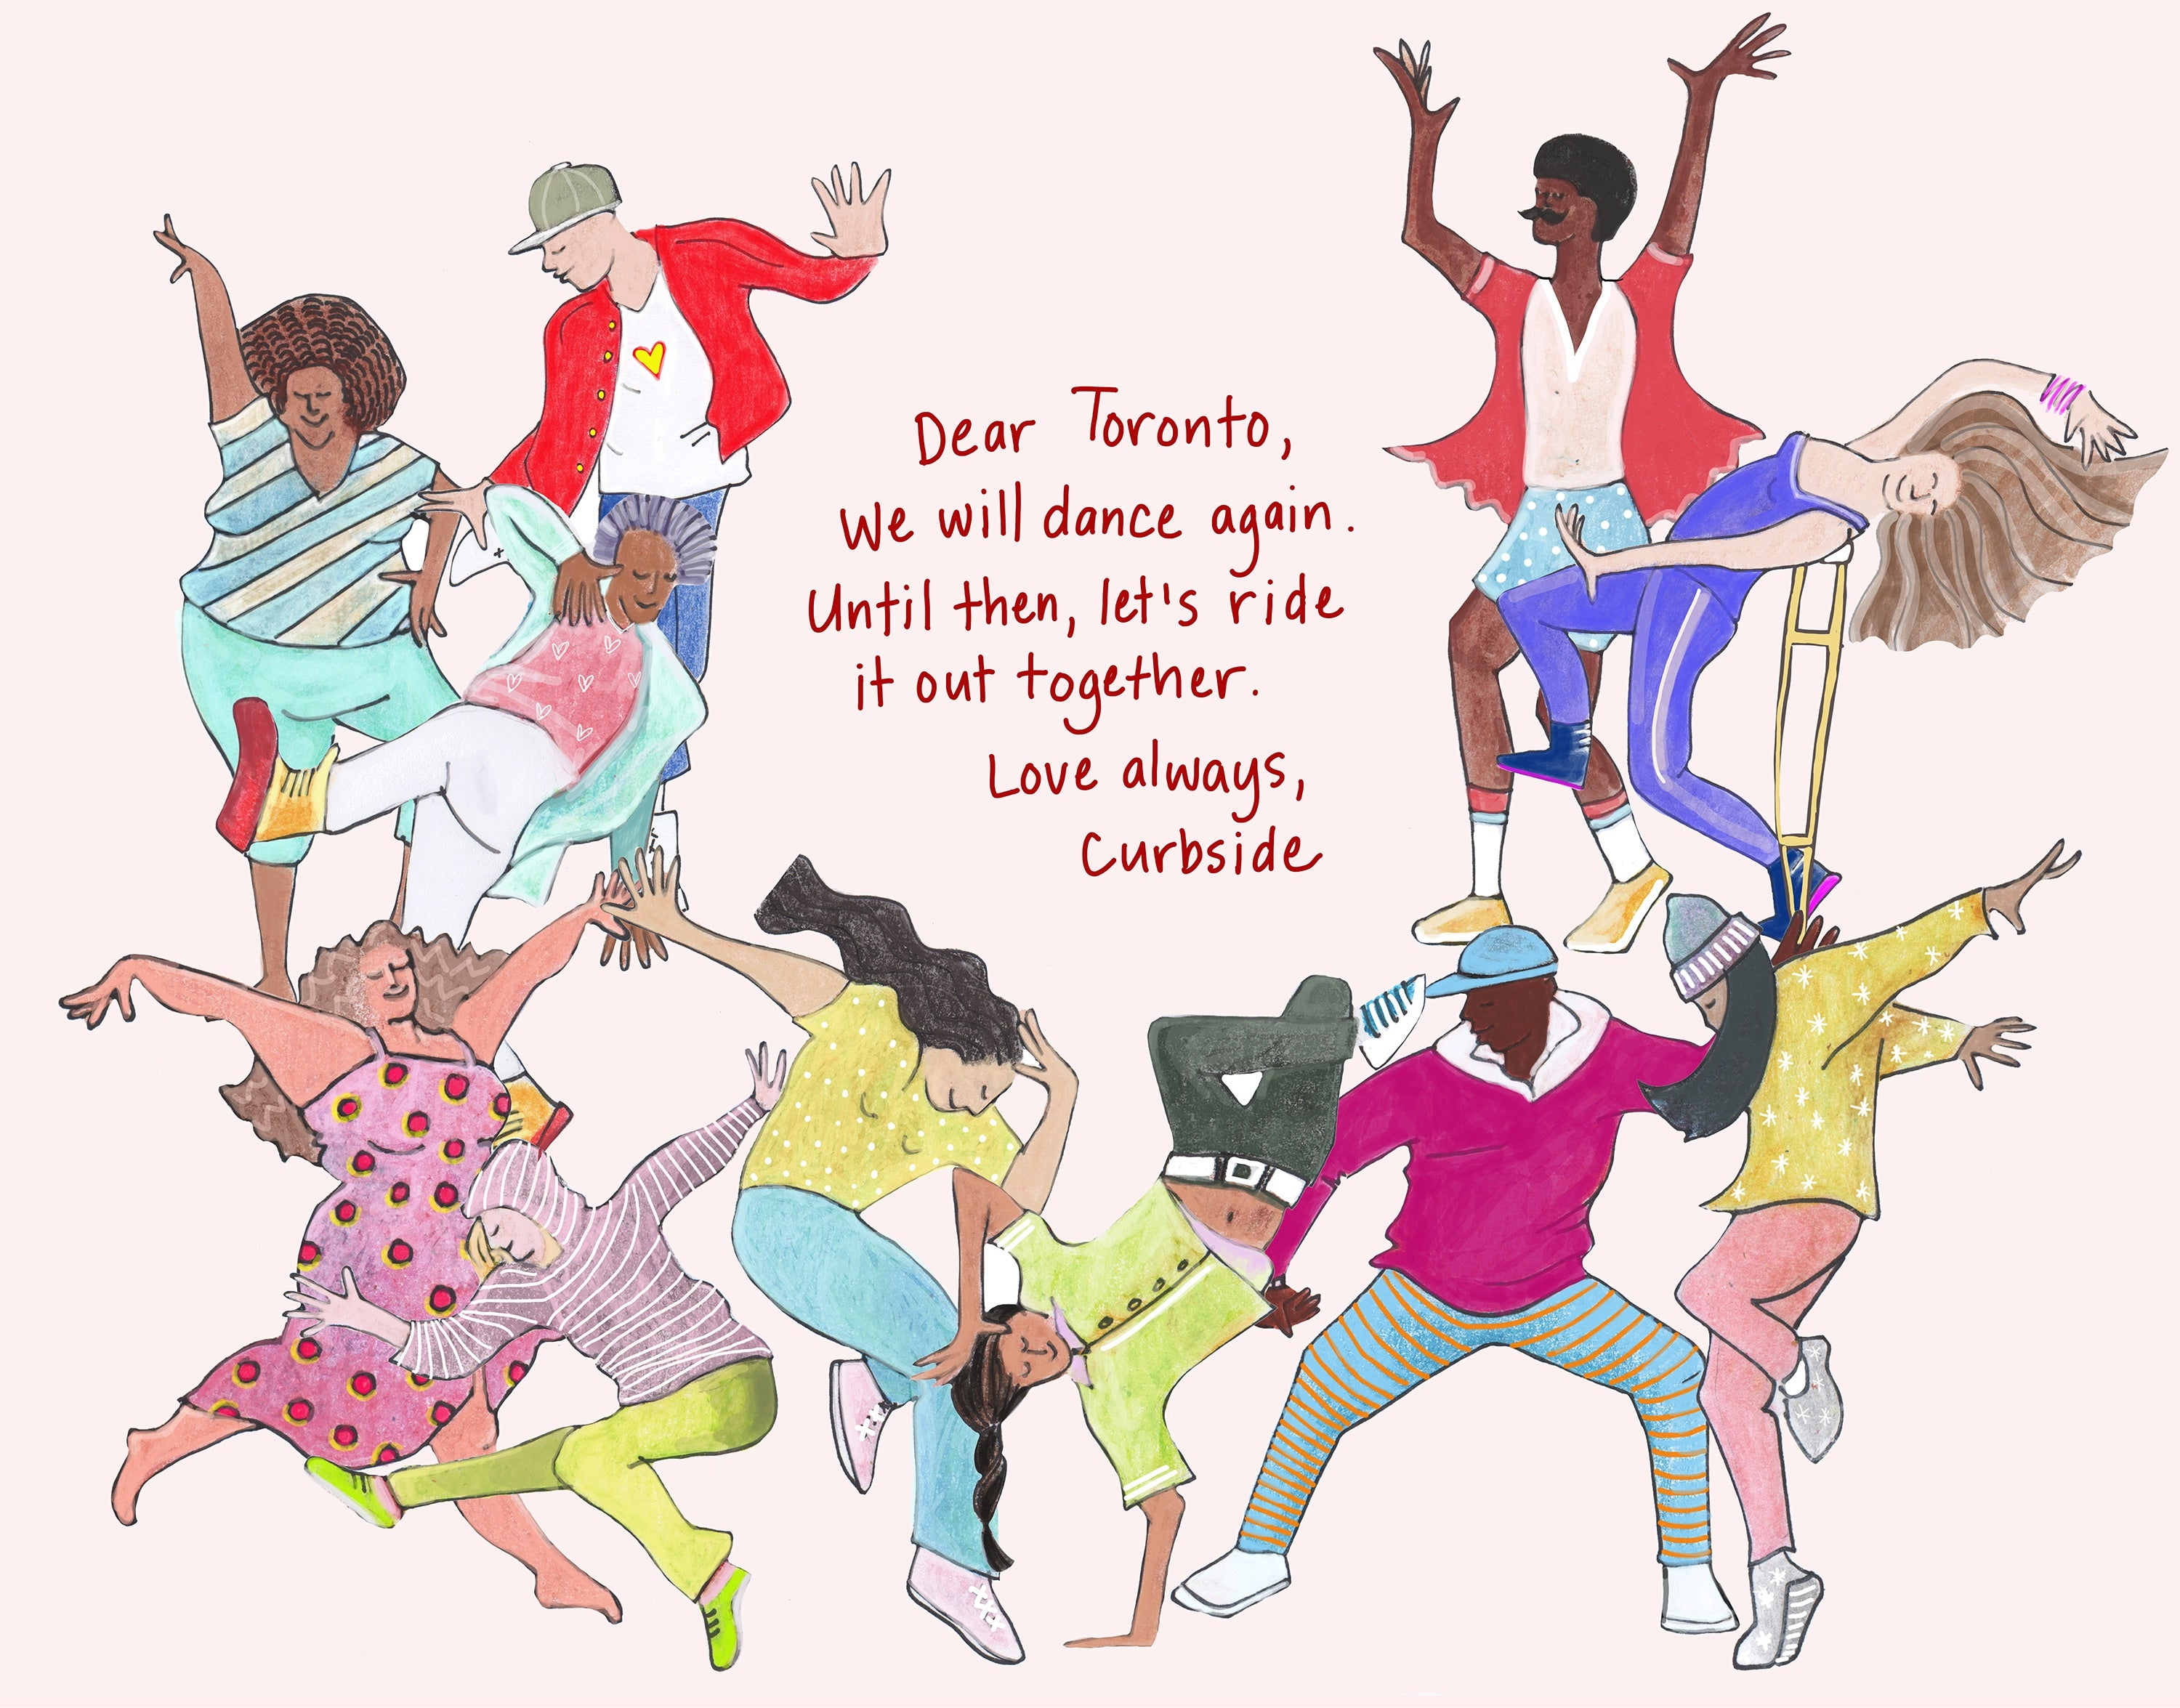 An illustration of people dancing in brightly coloured clothing around a love message written in red ink